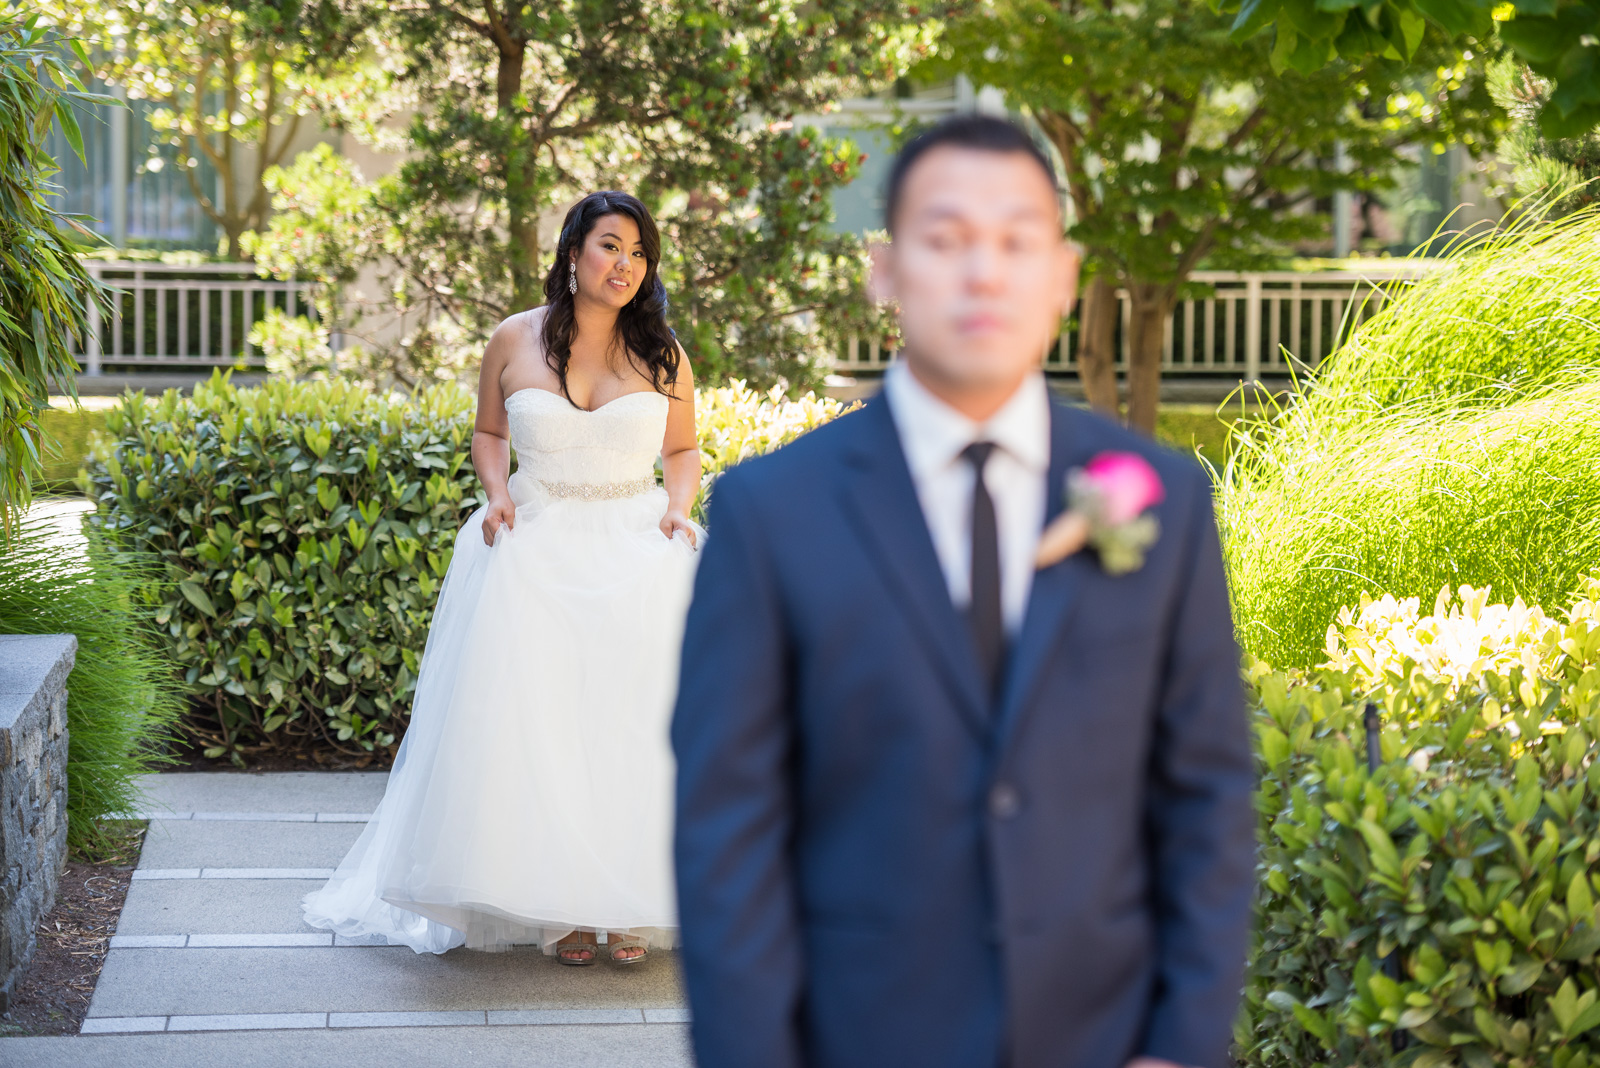 victoria-wedding-photographers-shaughnessy-restaurant-wedding-vandusen-gardens-wedding-14.jpg